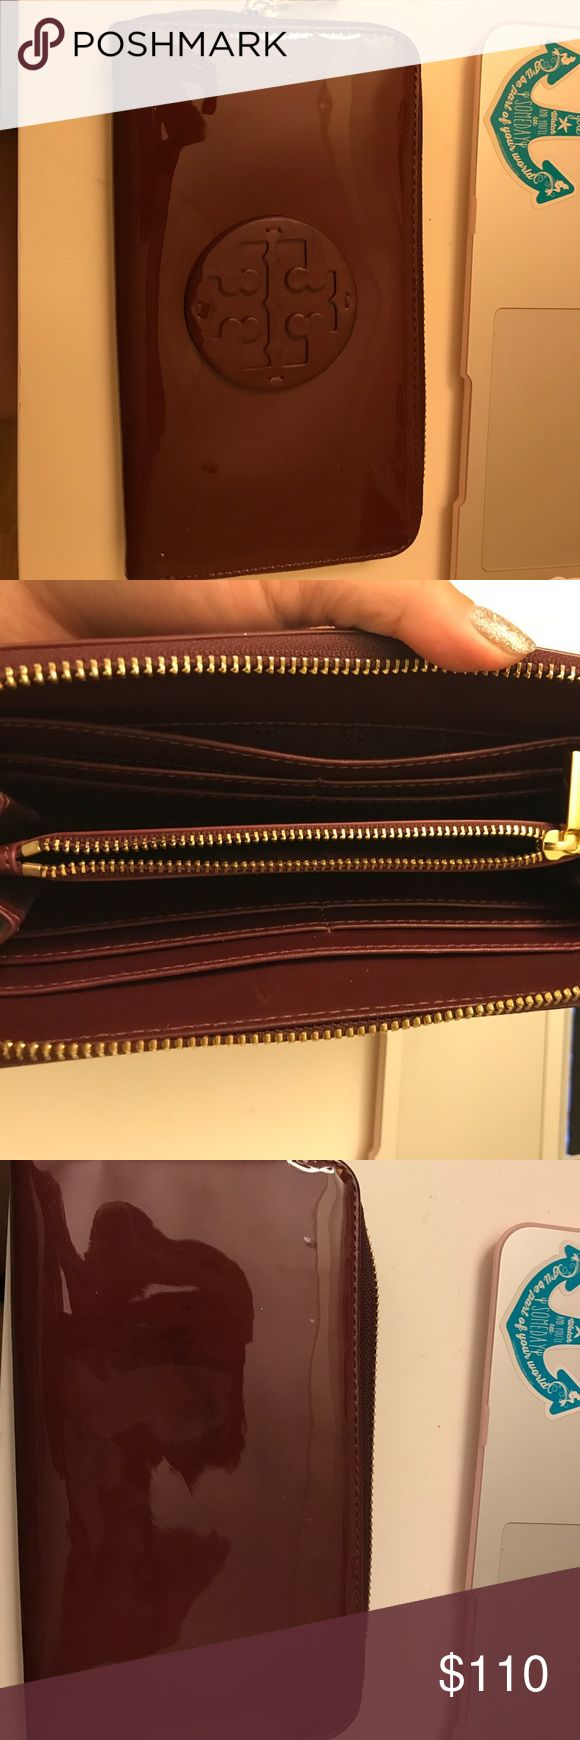 Tory Burch Continental Wallet Gently used Tory Burch Bags Wallets